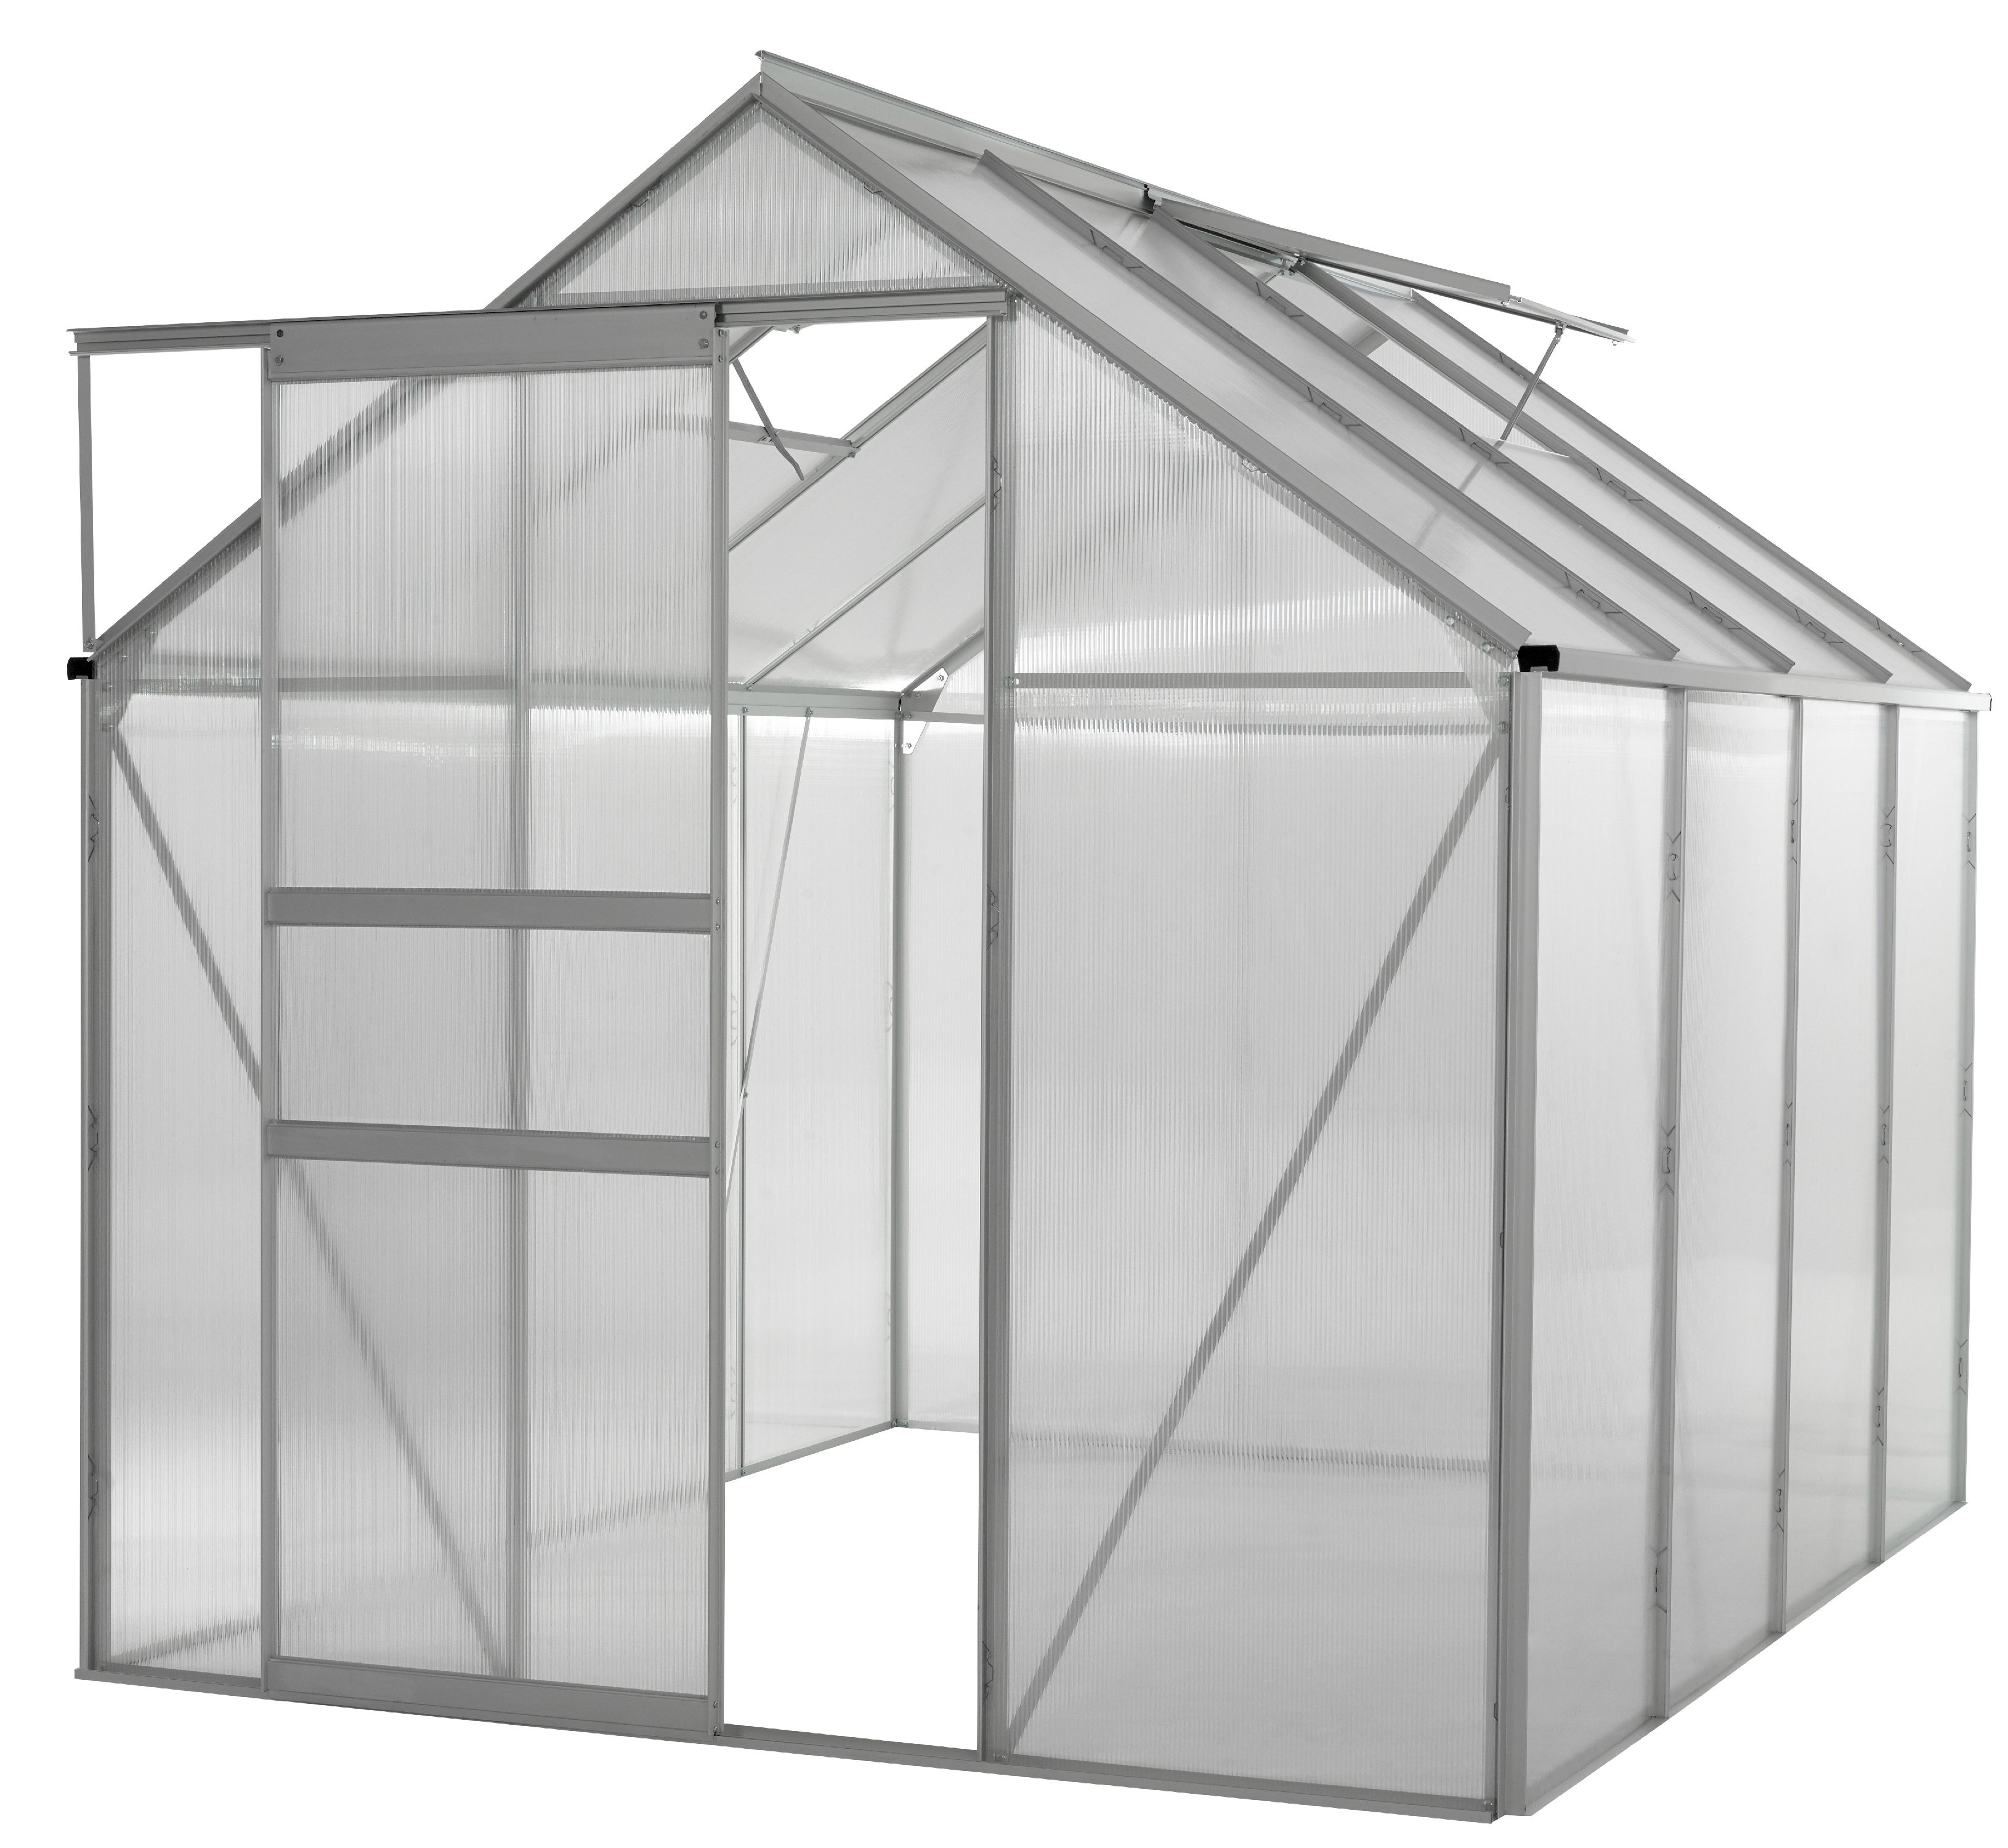 Ogrow WALK-IN 6' X 8' Lawn and Garden Greenhouse with Heavy Duty Aluminum Frame by KSH Brands